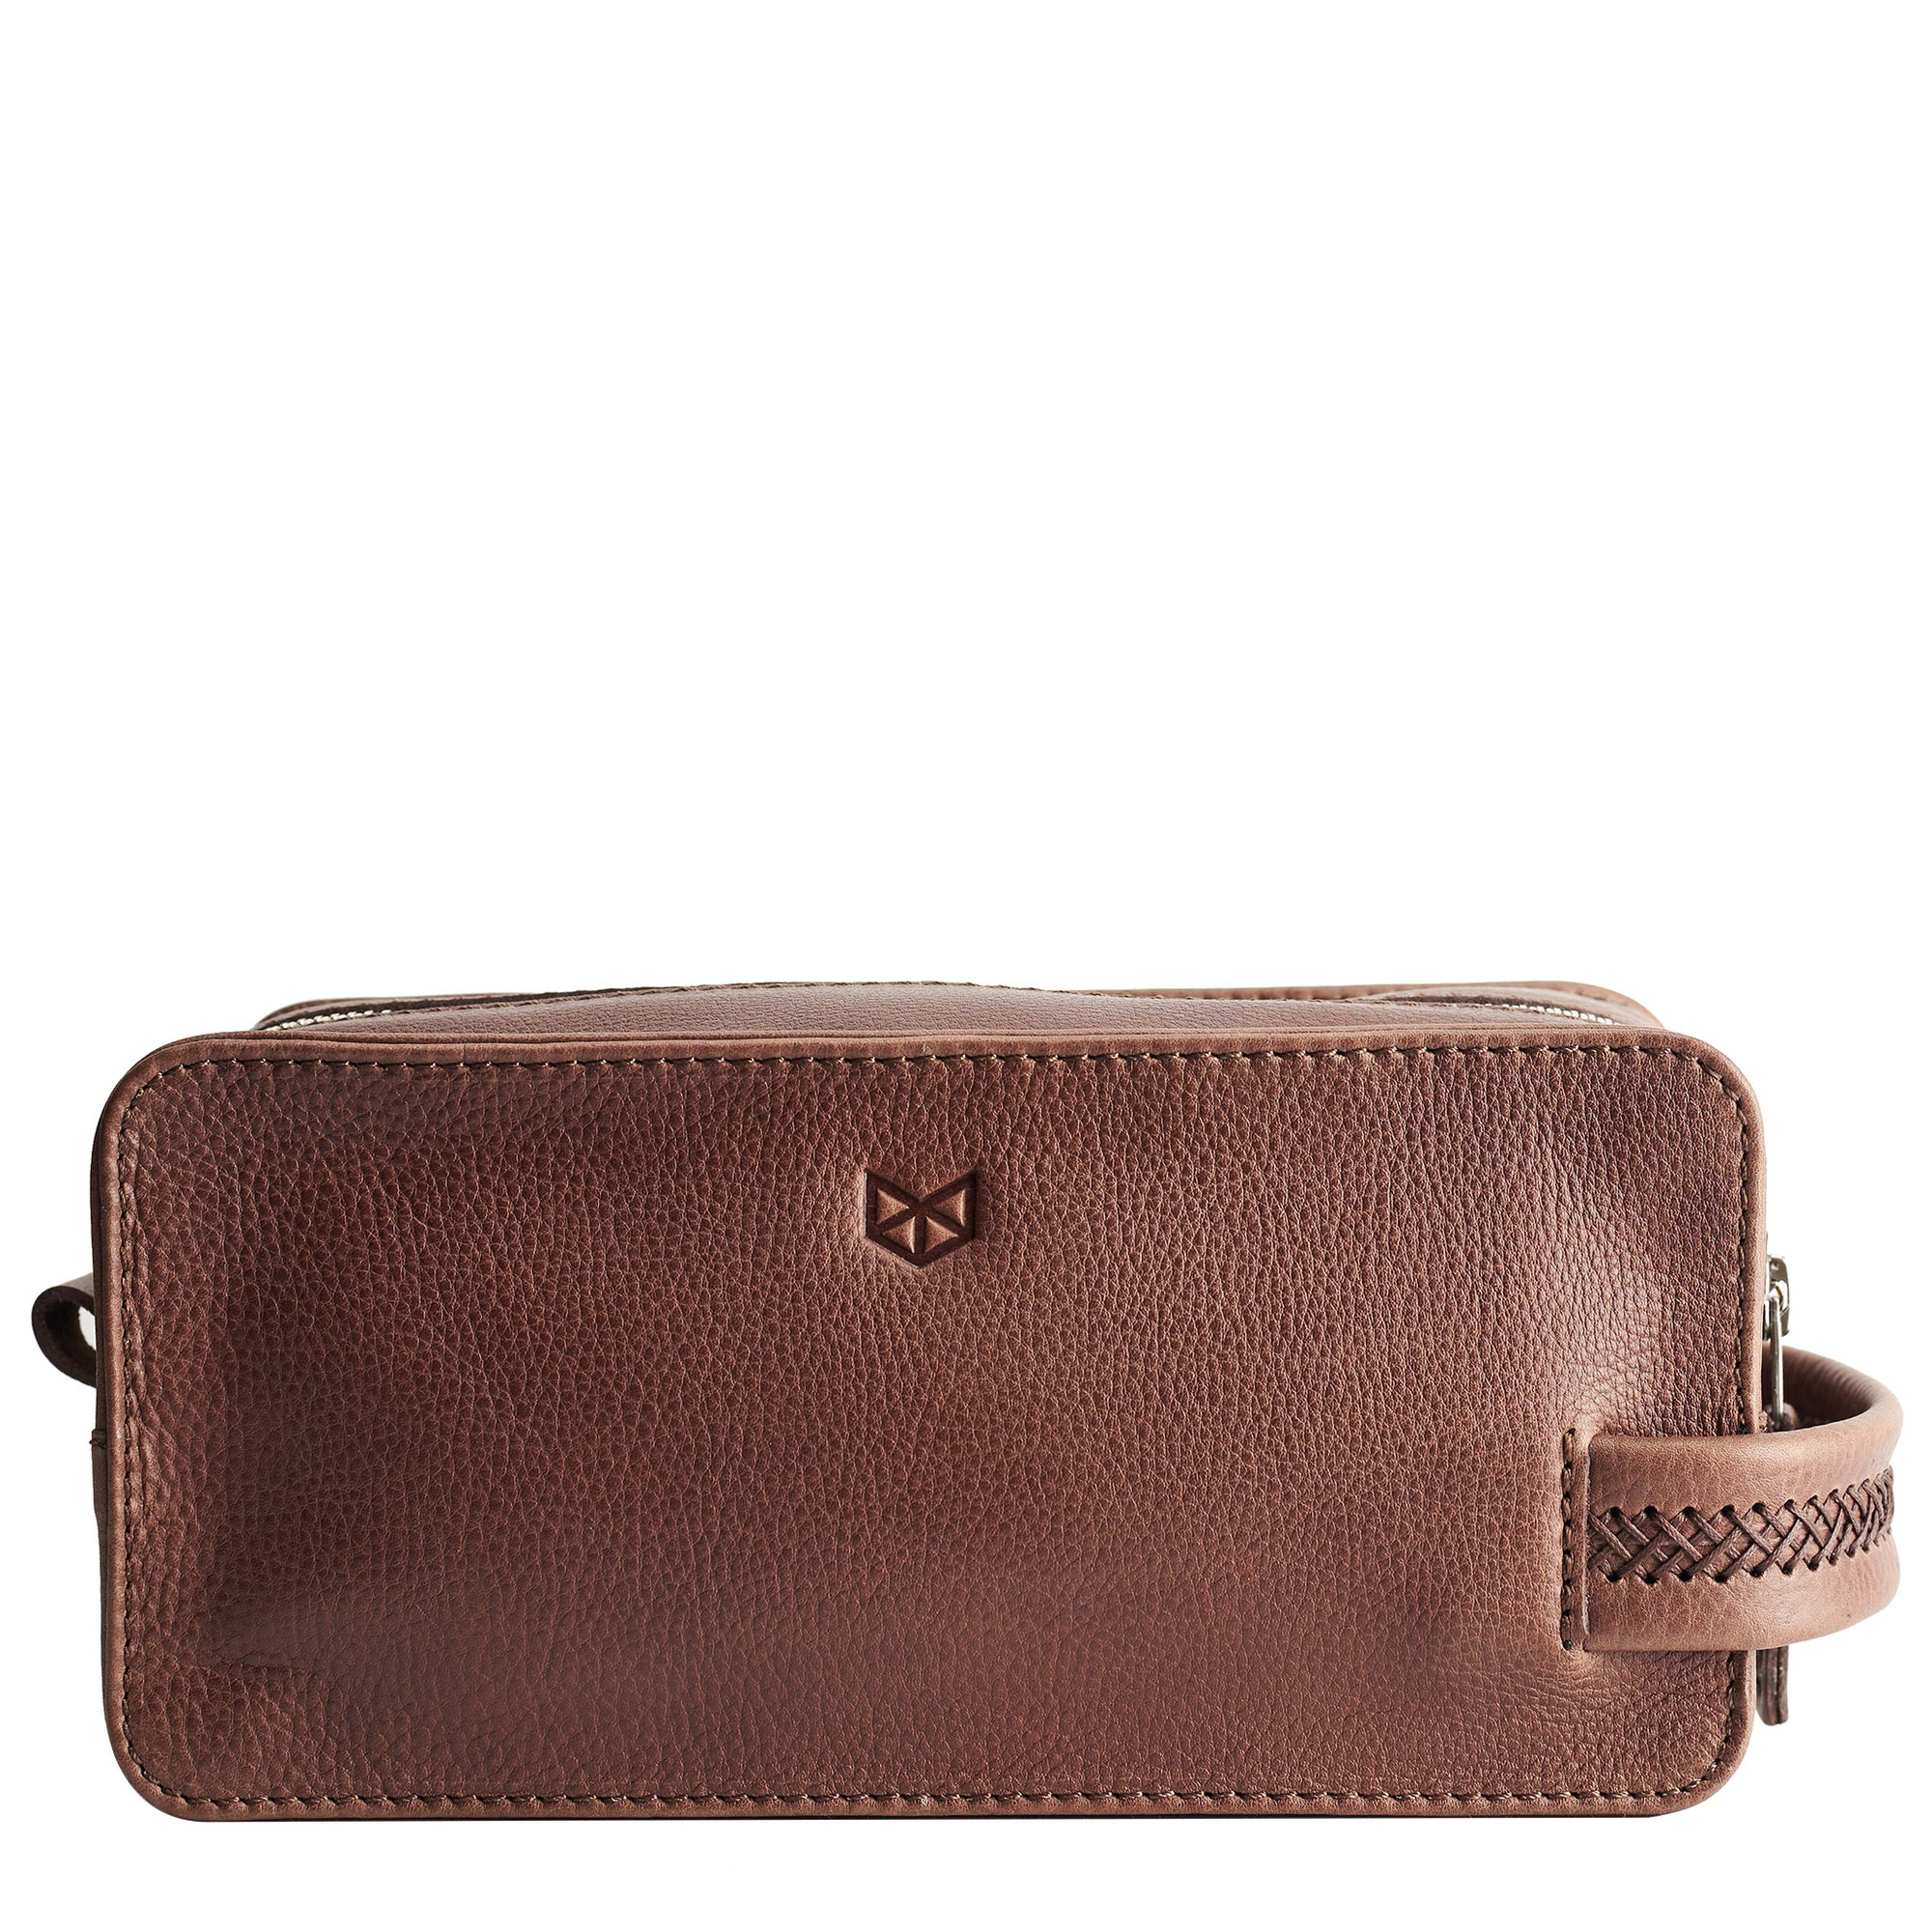 Brown leather toiletry, shaving bag with hand stitched handle. Groomsmen gifts